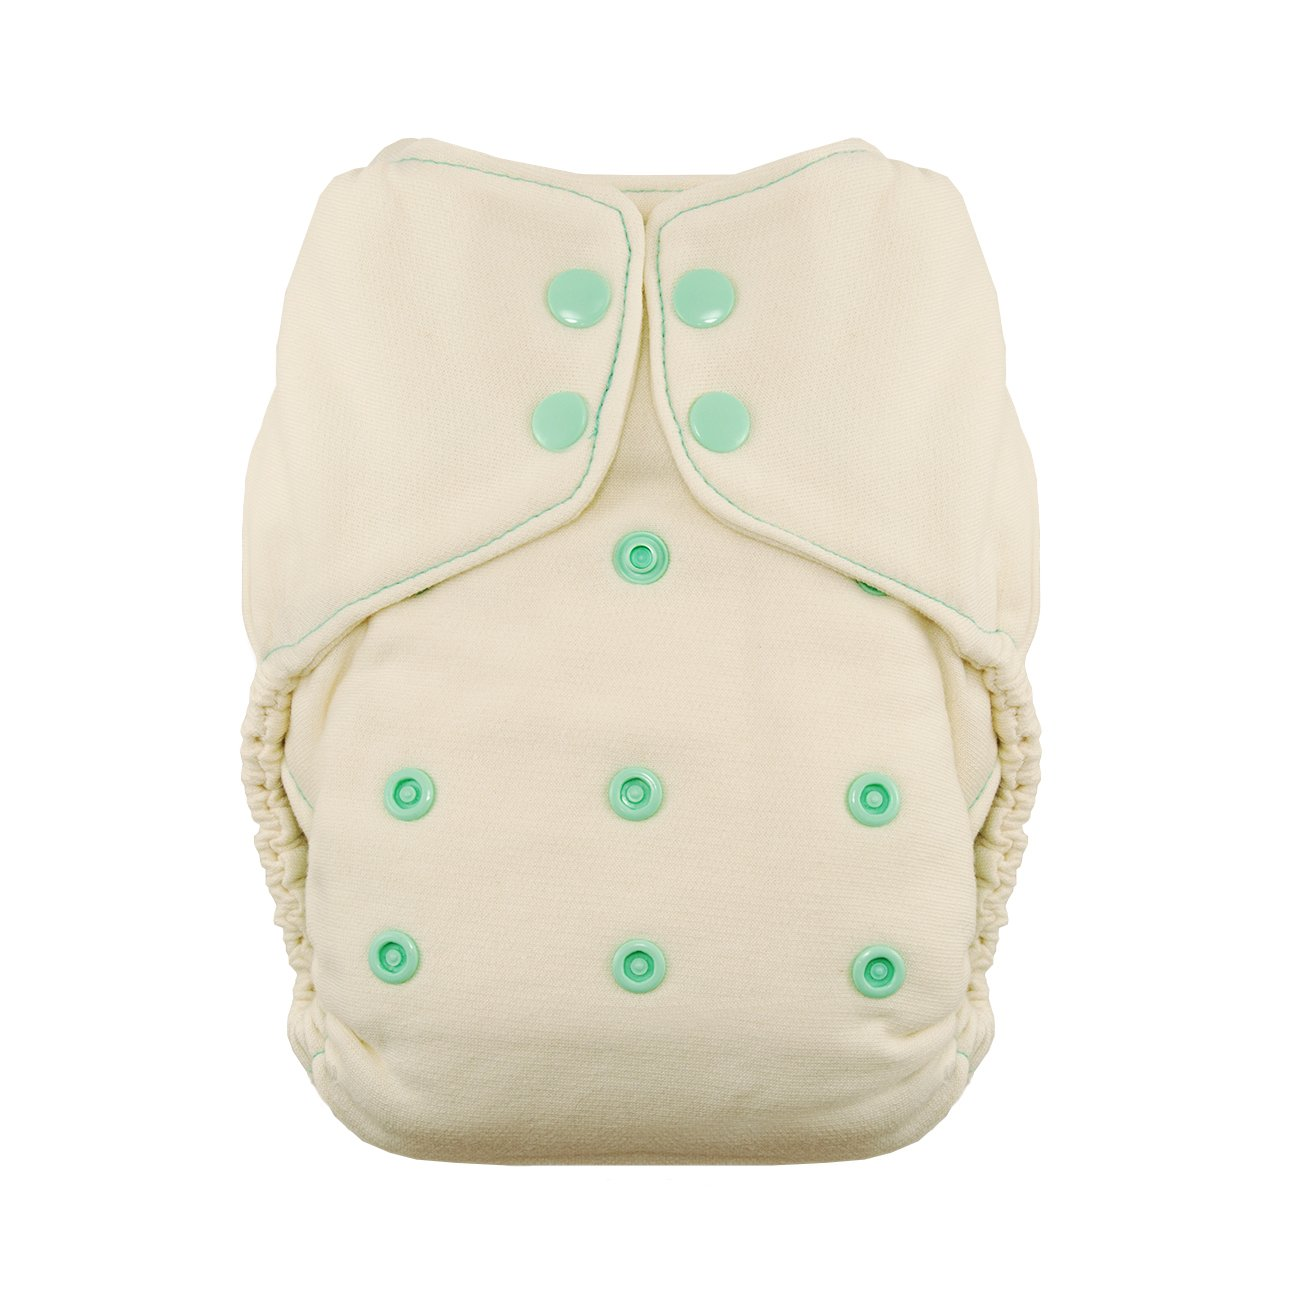 Thirsties Snap Natural One Size Fitted, Moss Diapers TNATOSFSMo